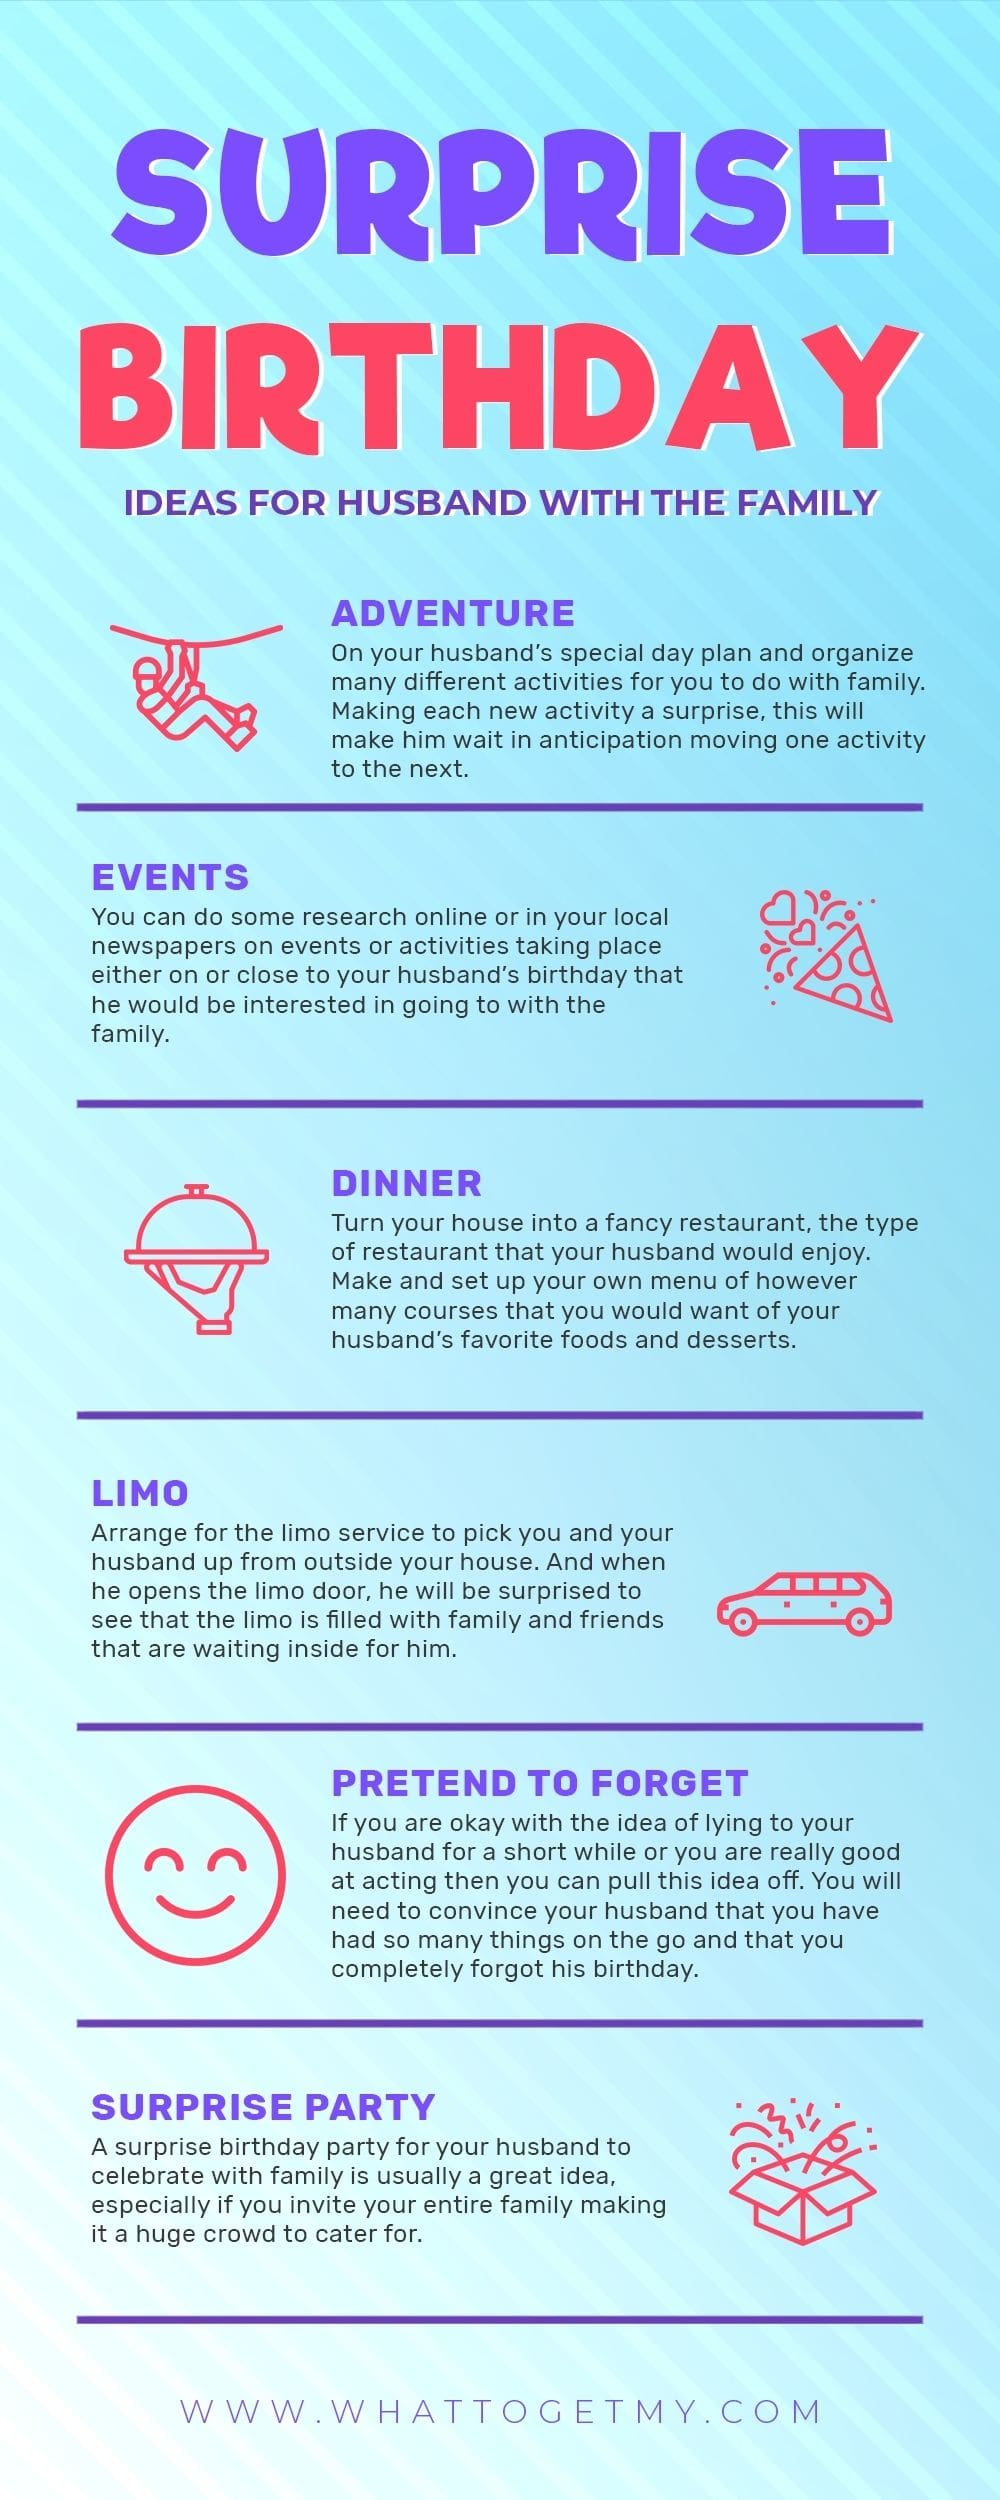 Infographic Surprise Birthday Ideas For Husband With The Family-min